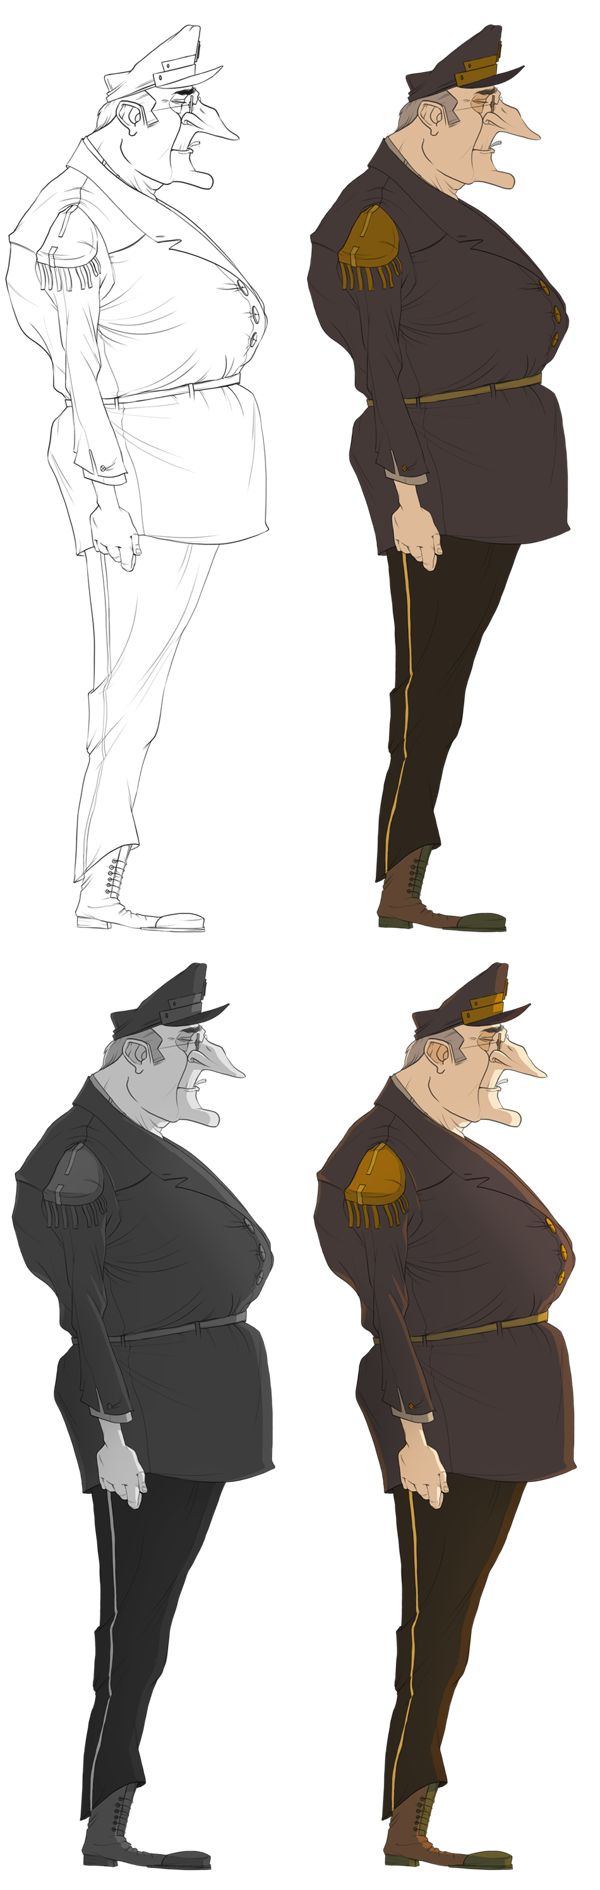 Anime Character Design Process : Best images about character design on pinterest